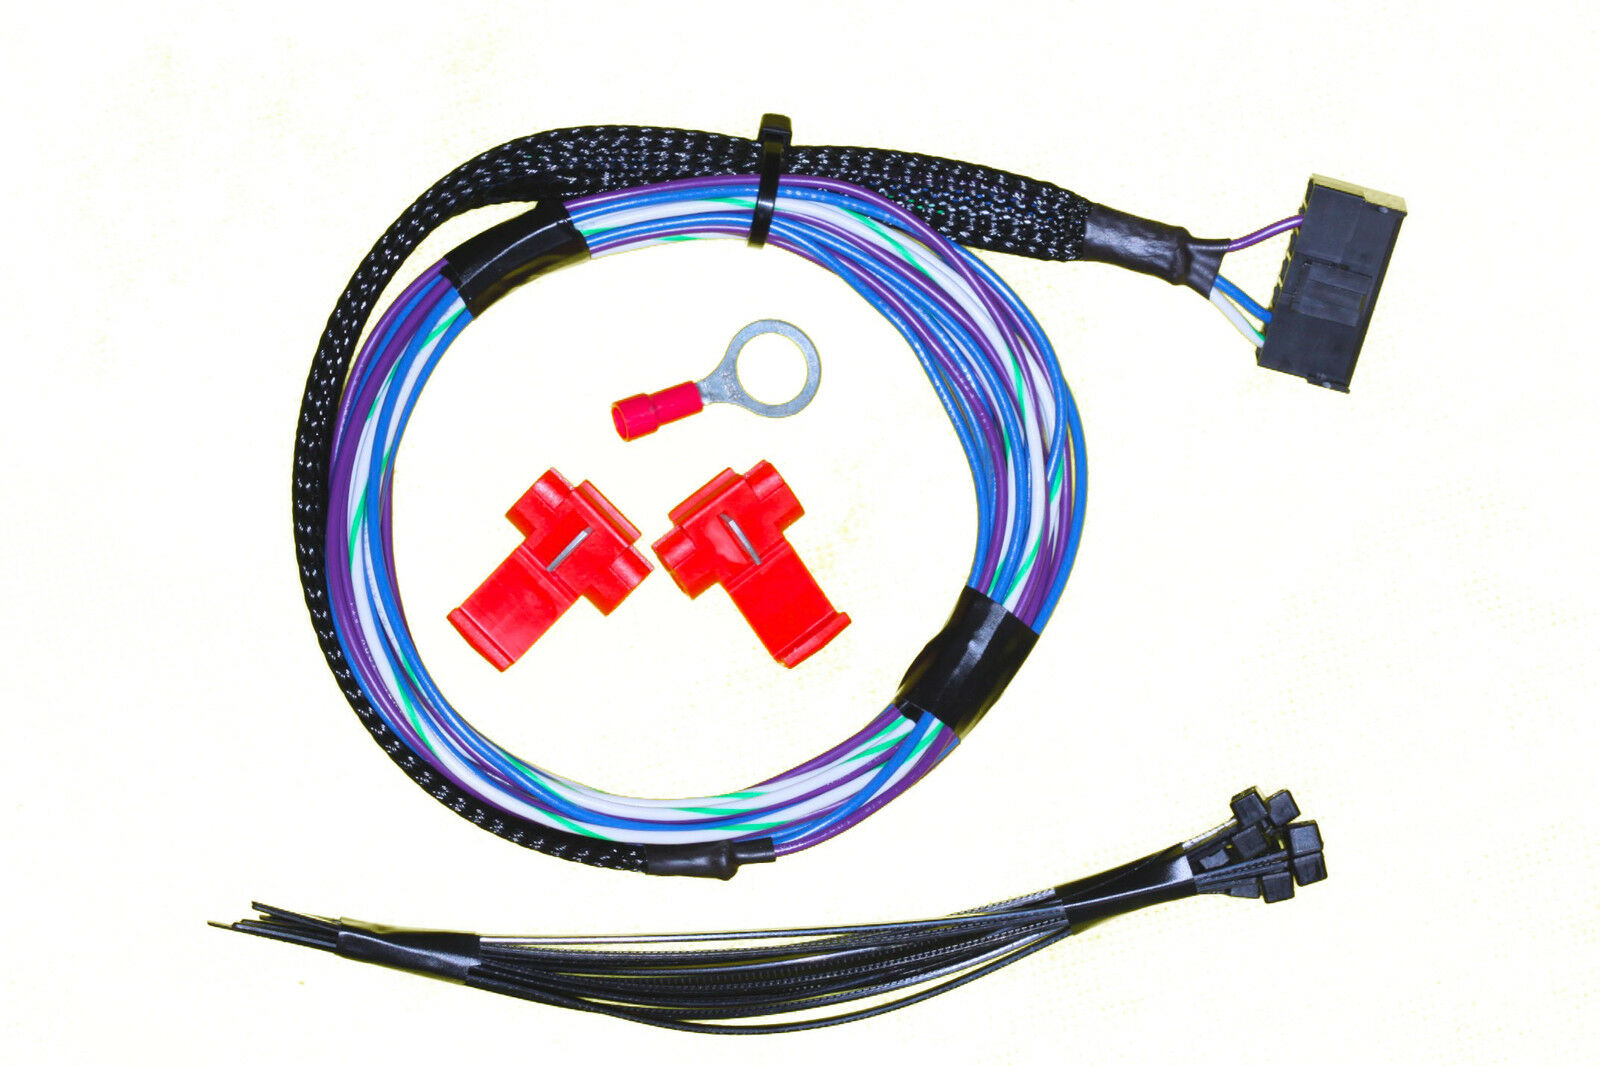 Donnelly 015315 Rear View Mirror W Maplights Wire Harness 7pin 3 Onstar Wiring Diagram 1 Of See More